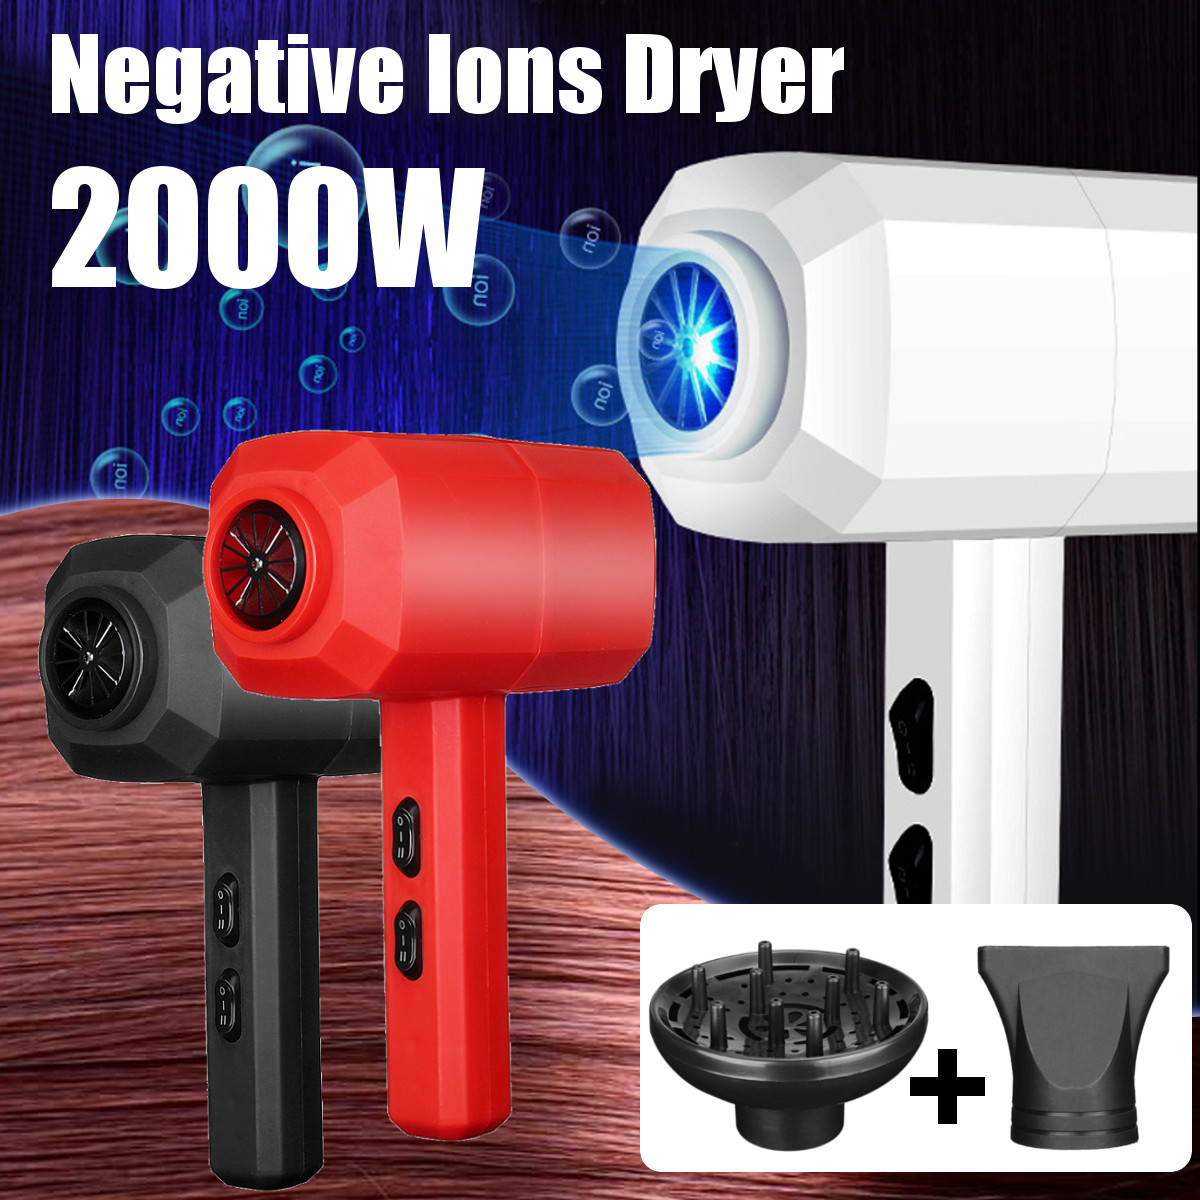 2000W Negative Ion Dryer Hair Dryer Flat Round Mouth Electric Hair Dryer Blower